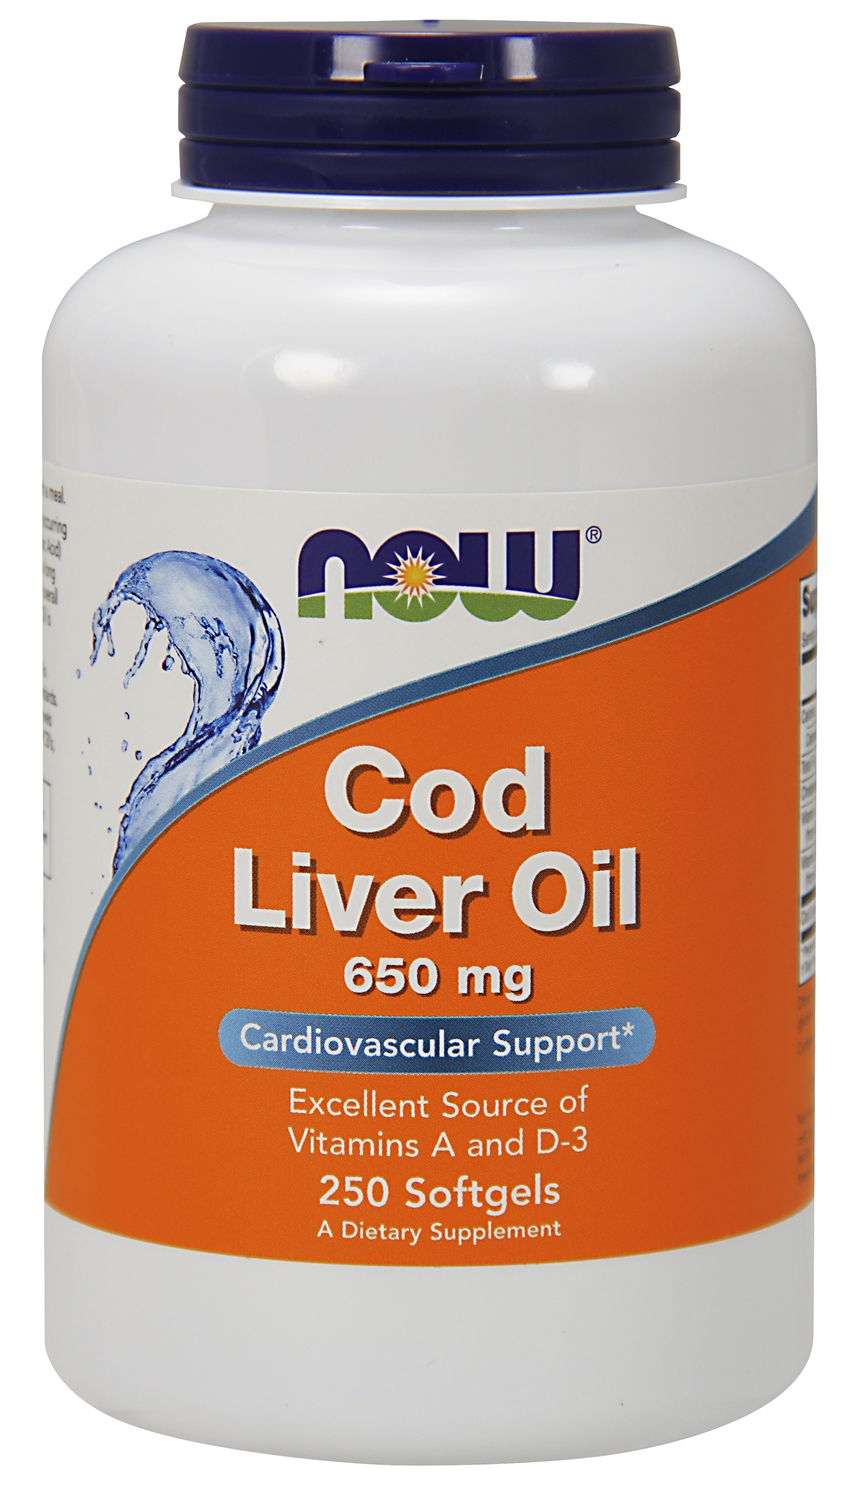 Cod Liver Oil Double Strength 650 mg 250 sgels by NOW